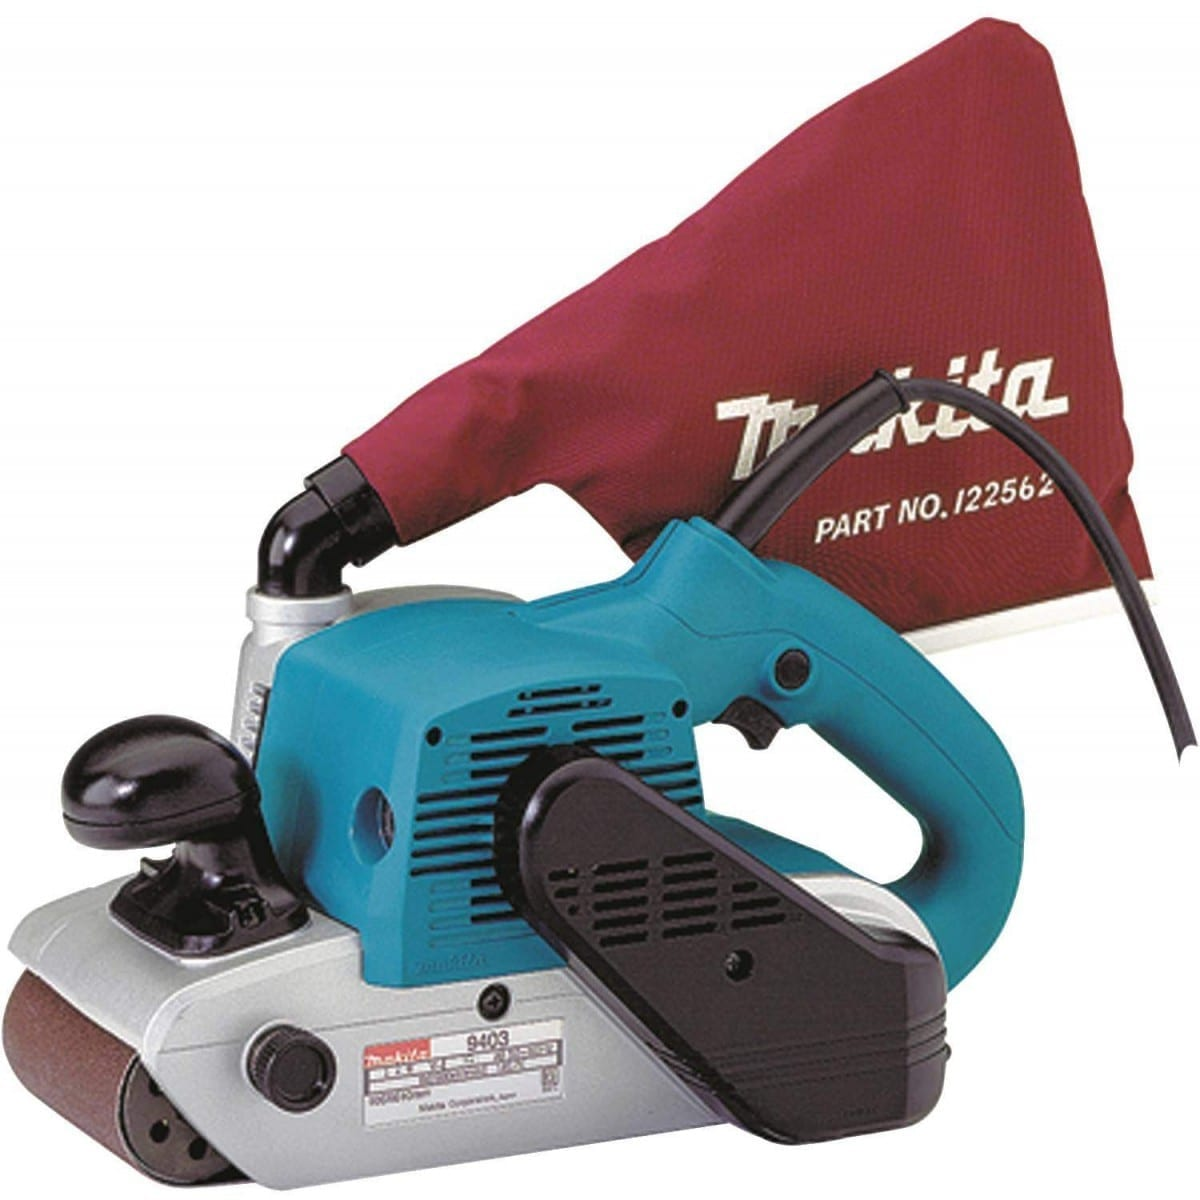 Makita 9403 4″ x 24″ Belt Sander